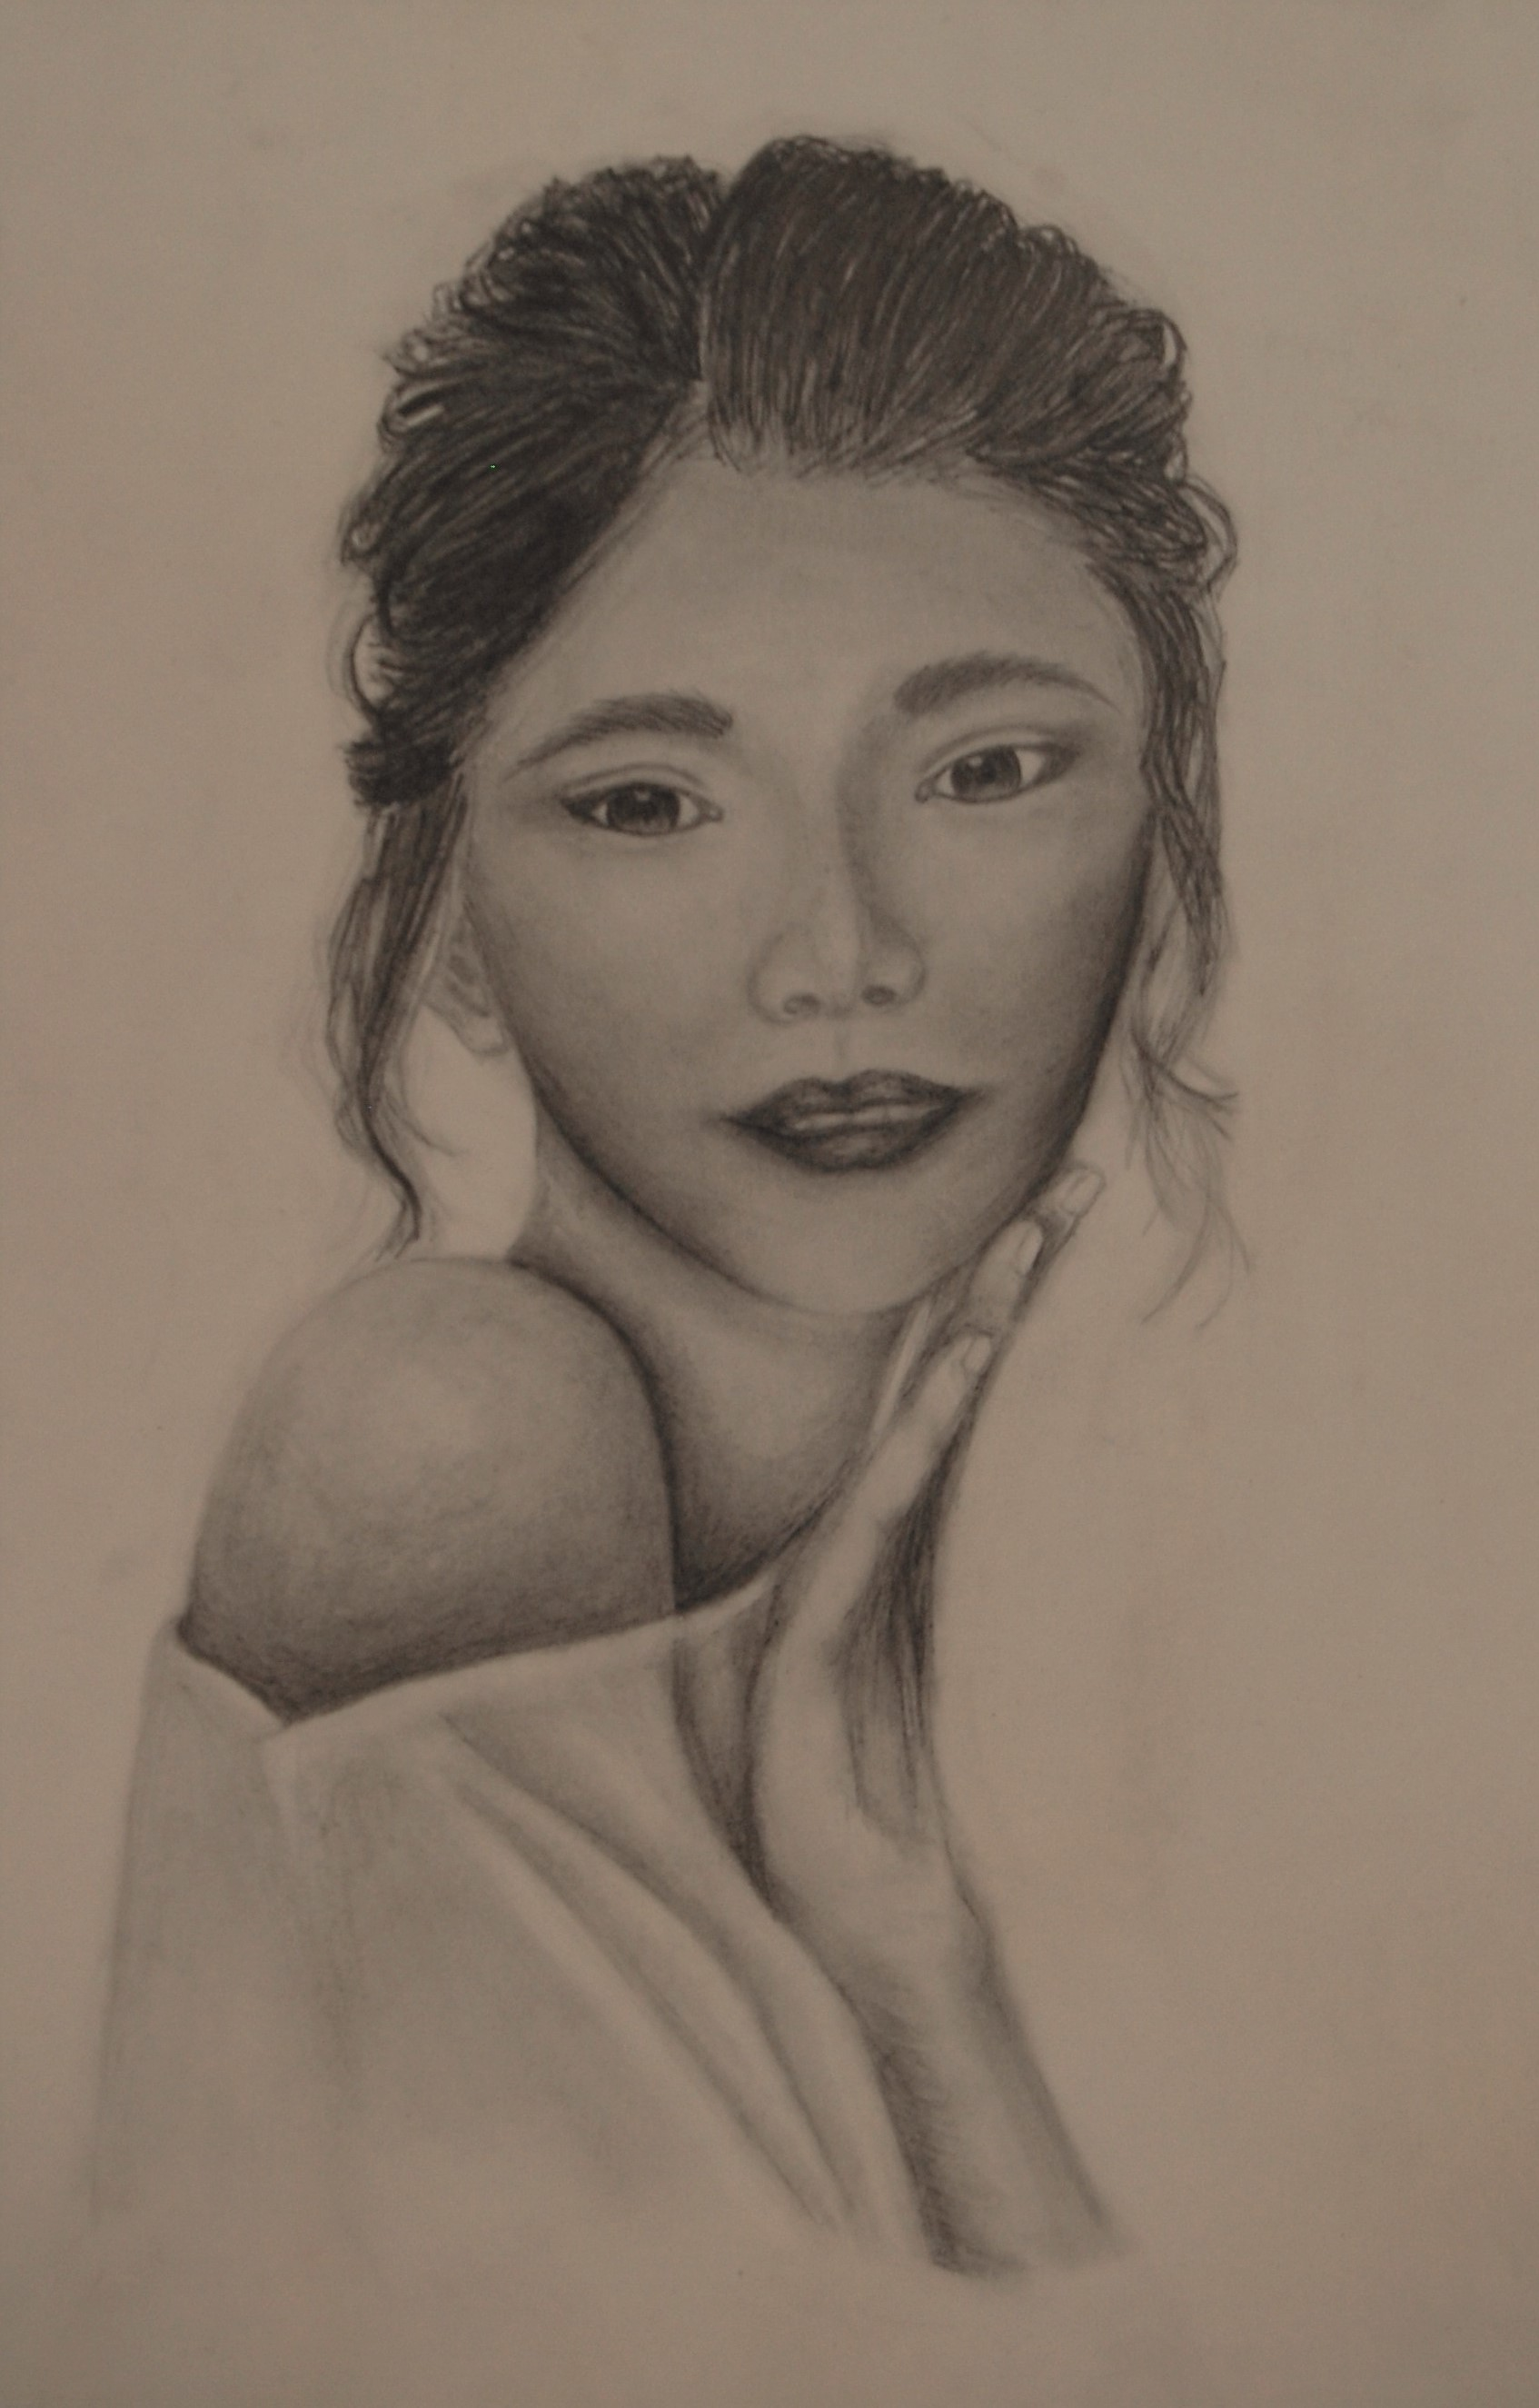 Women in Asia 1 (graphite) - Claire Zhang